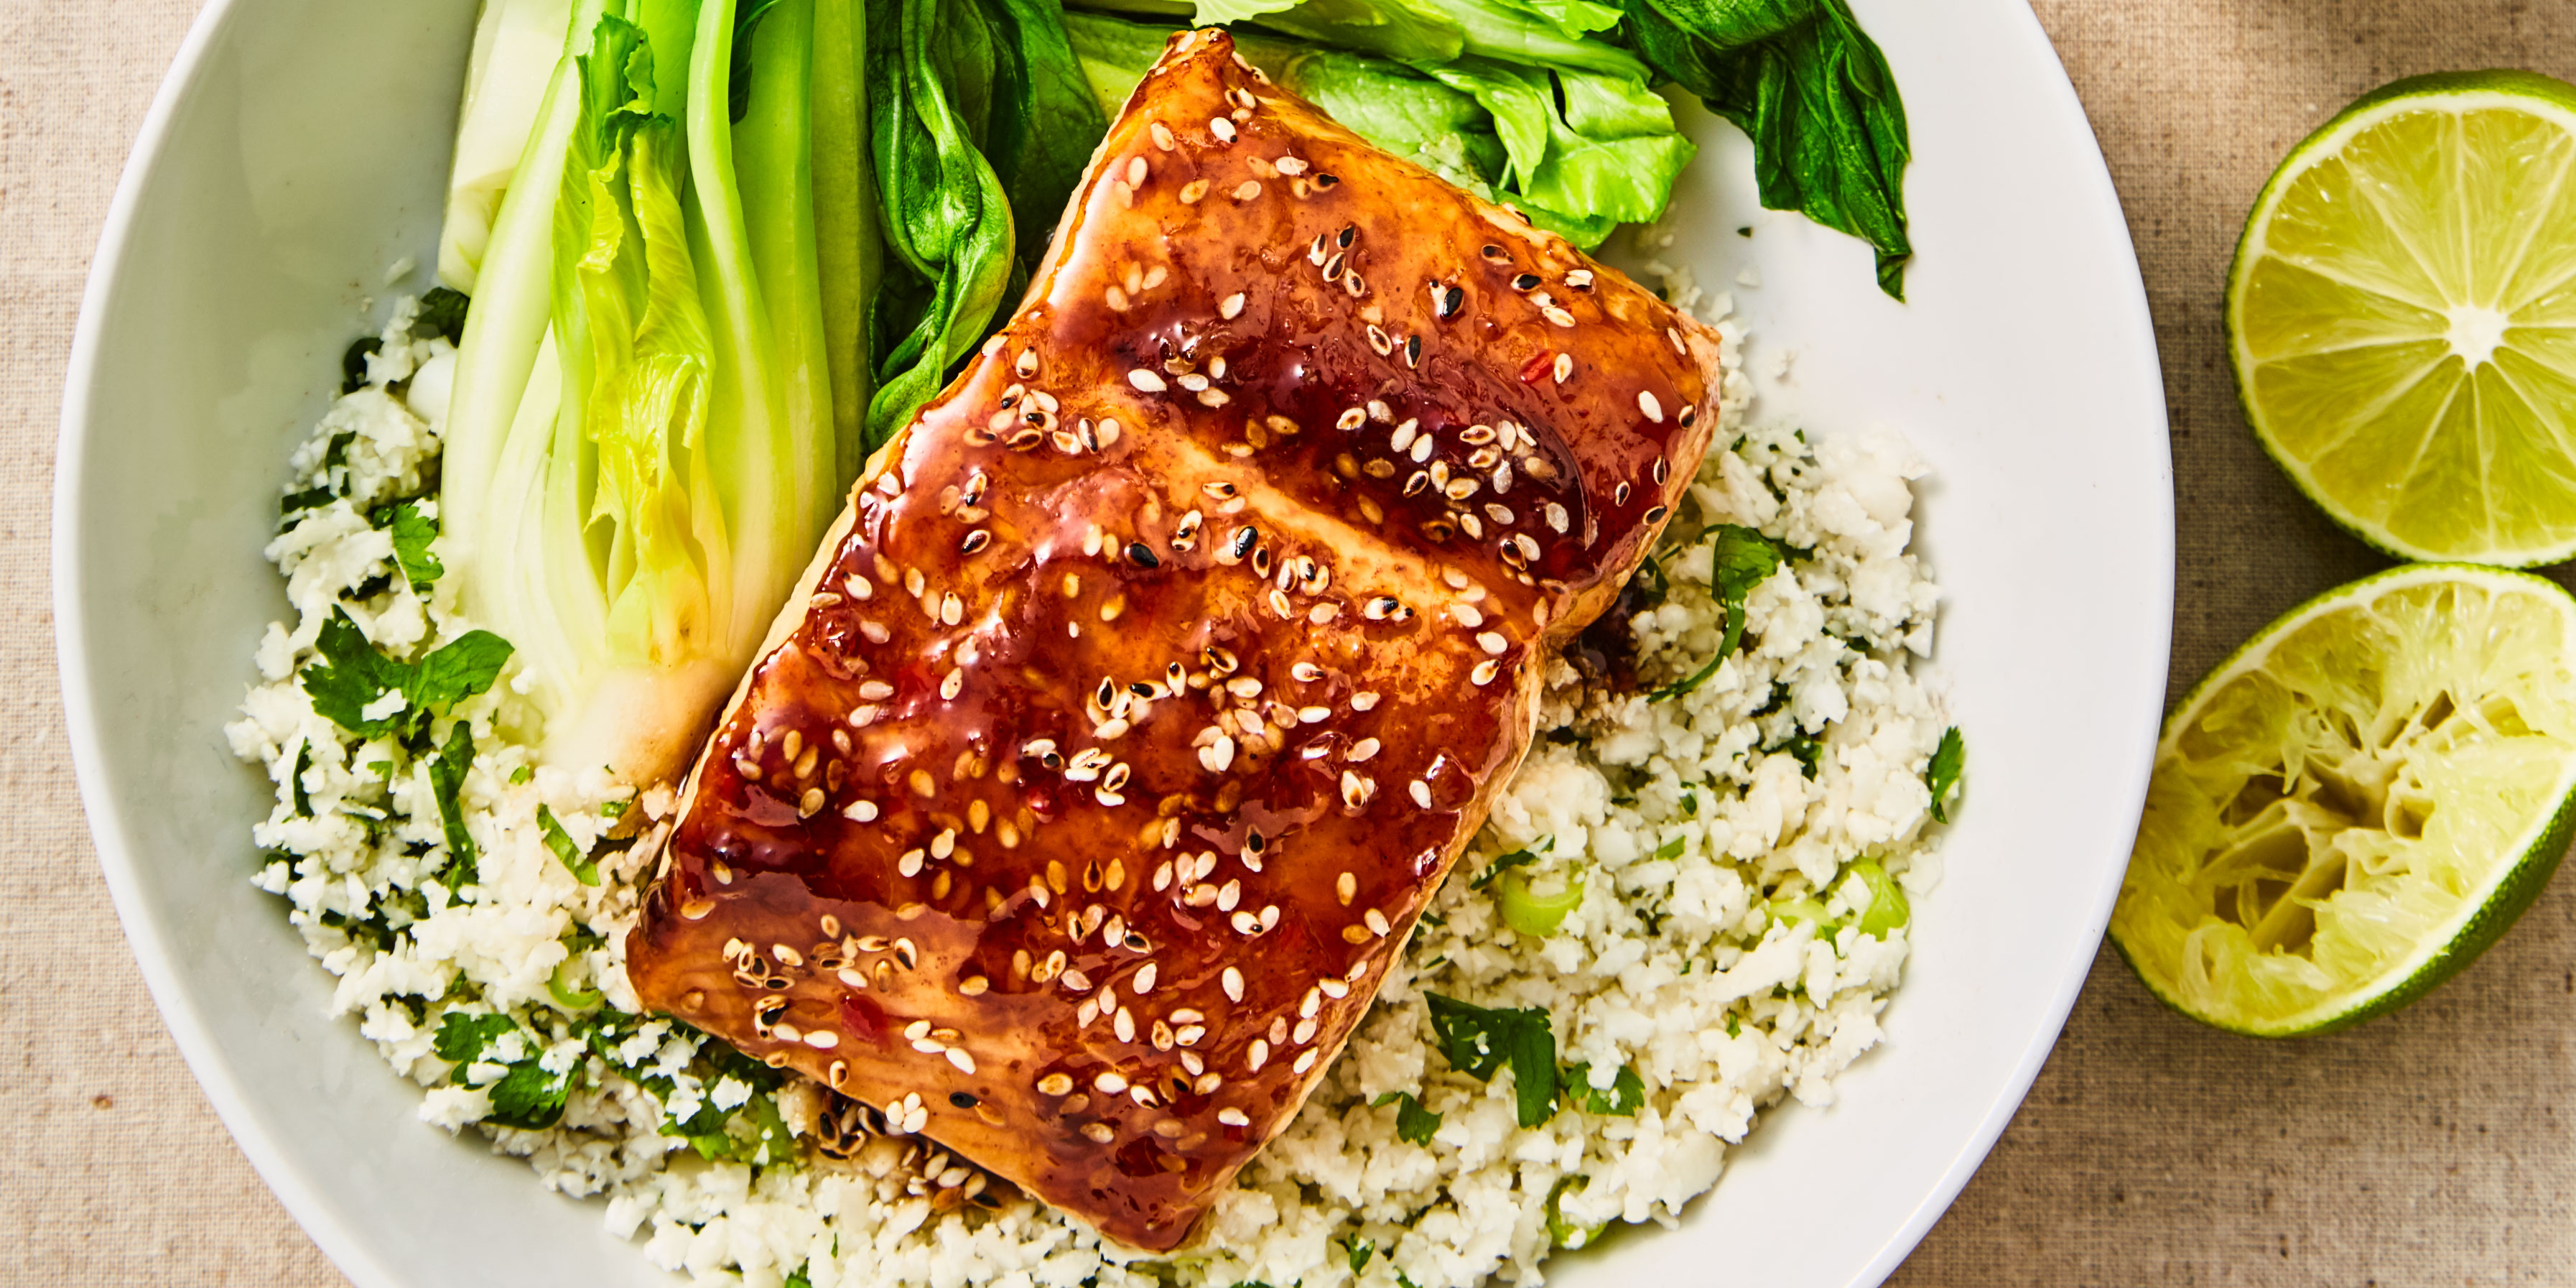 Teriyaki Salmon Cauliflower Rice served alongside pak choi in a white bowl with lime wedges on the side